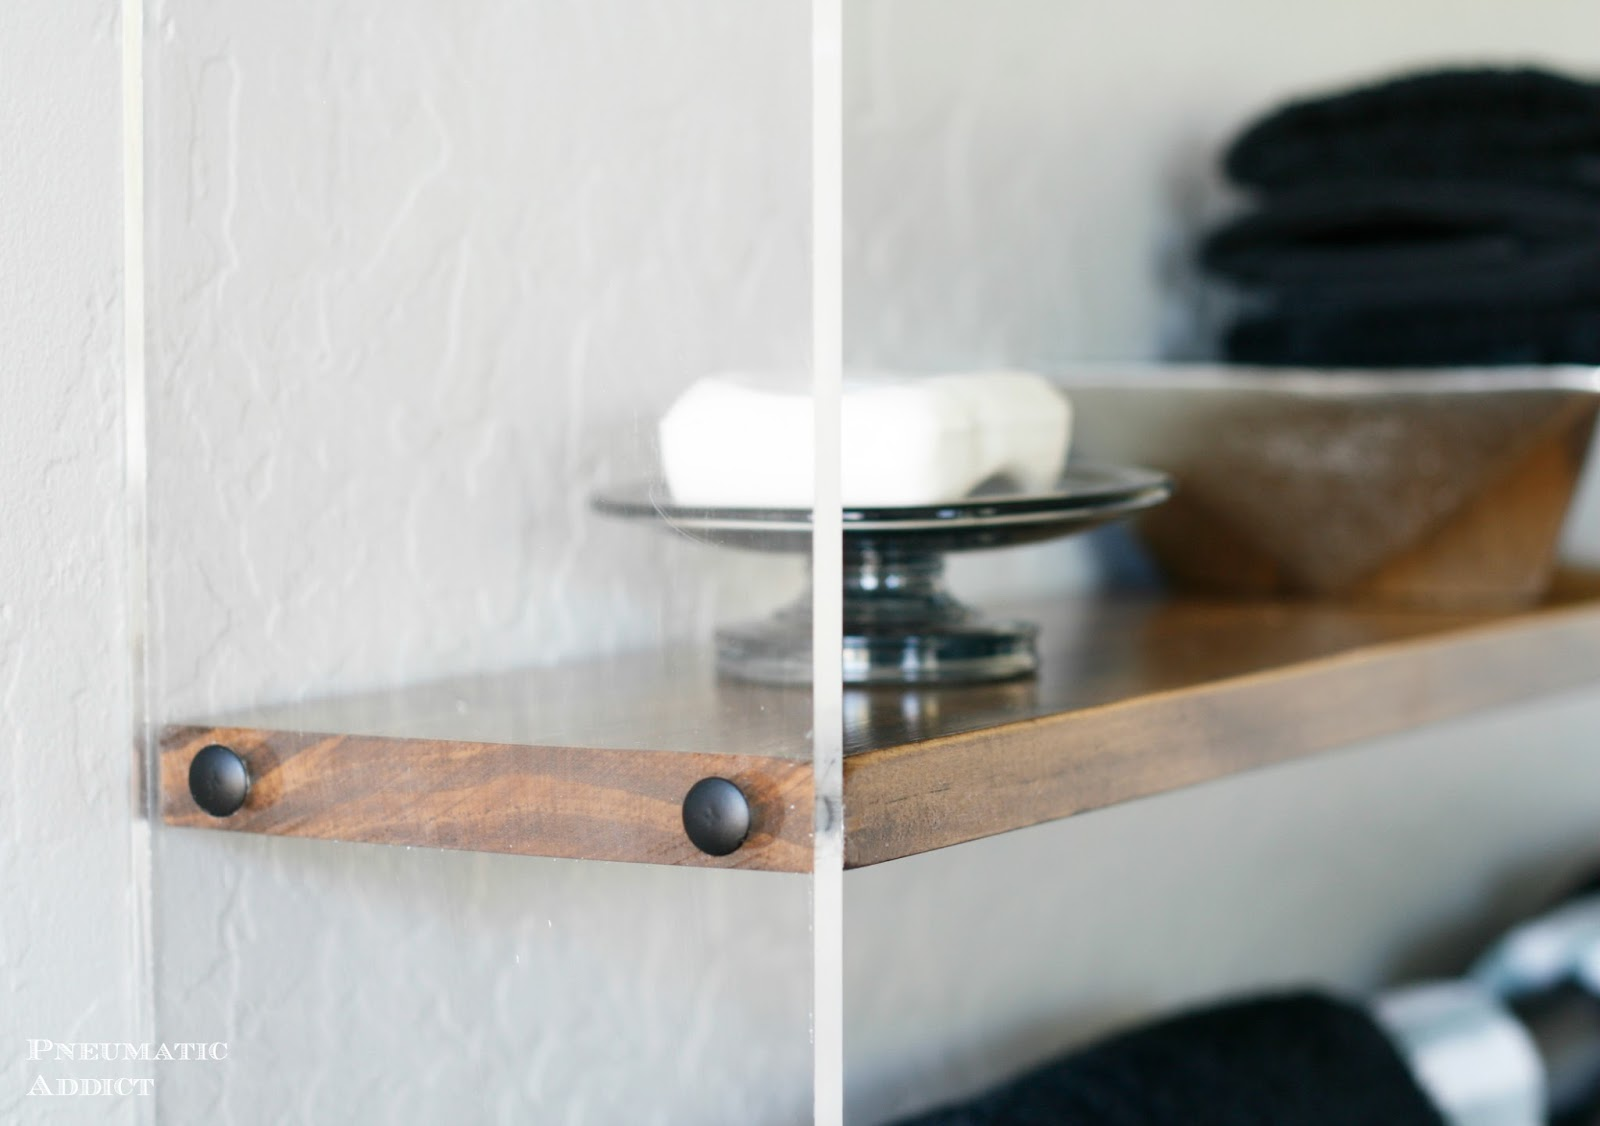 Pneumatic Addict : Wood and Acrylic Bathroom Shelf